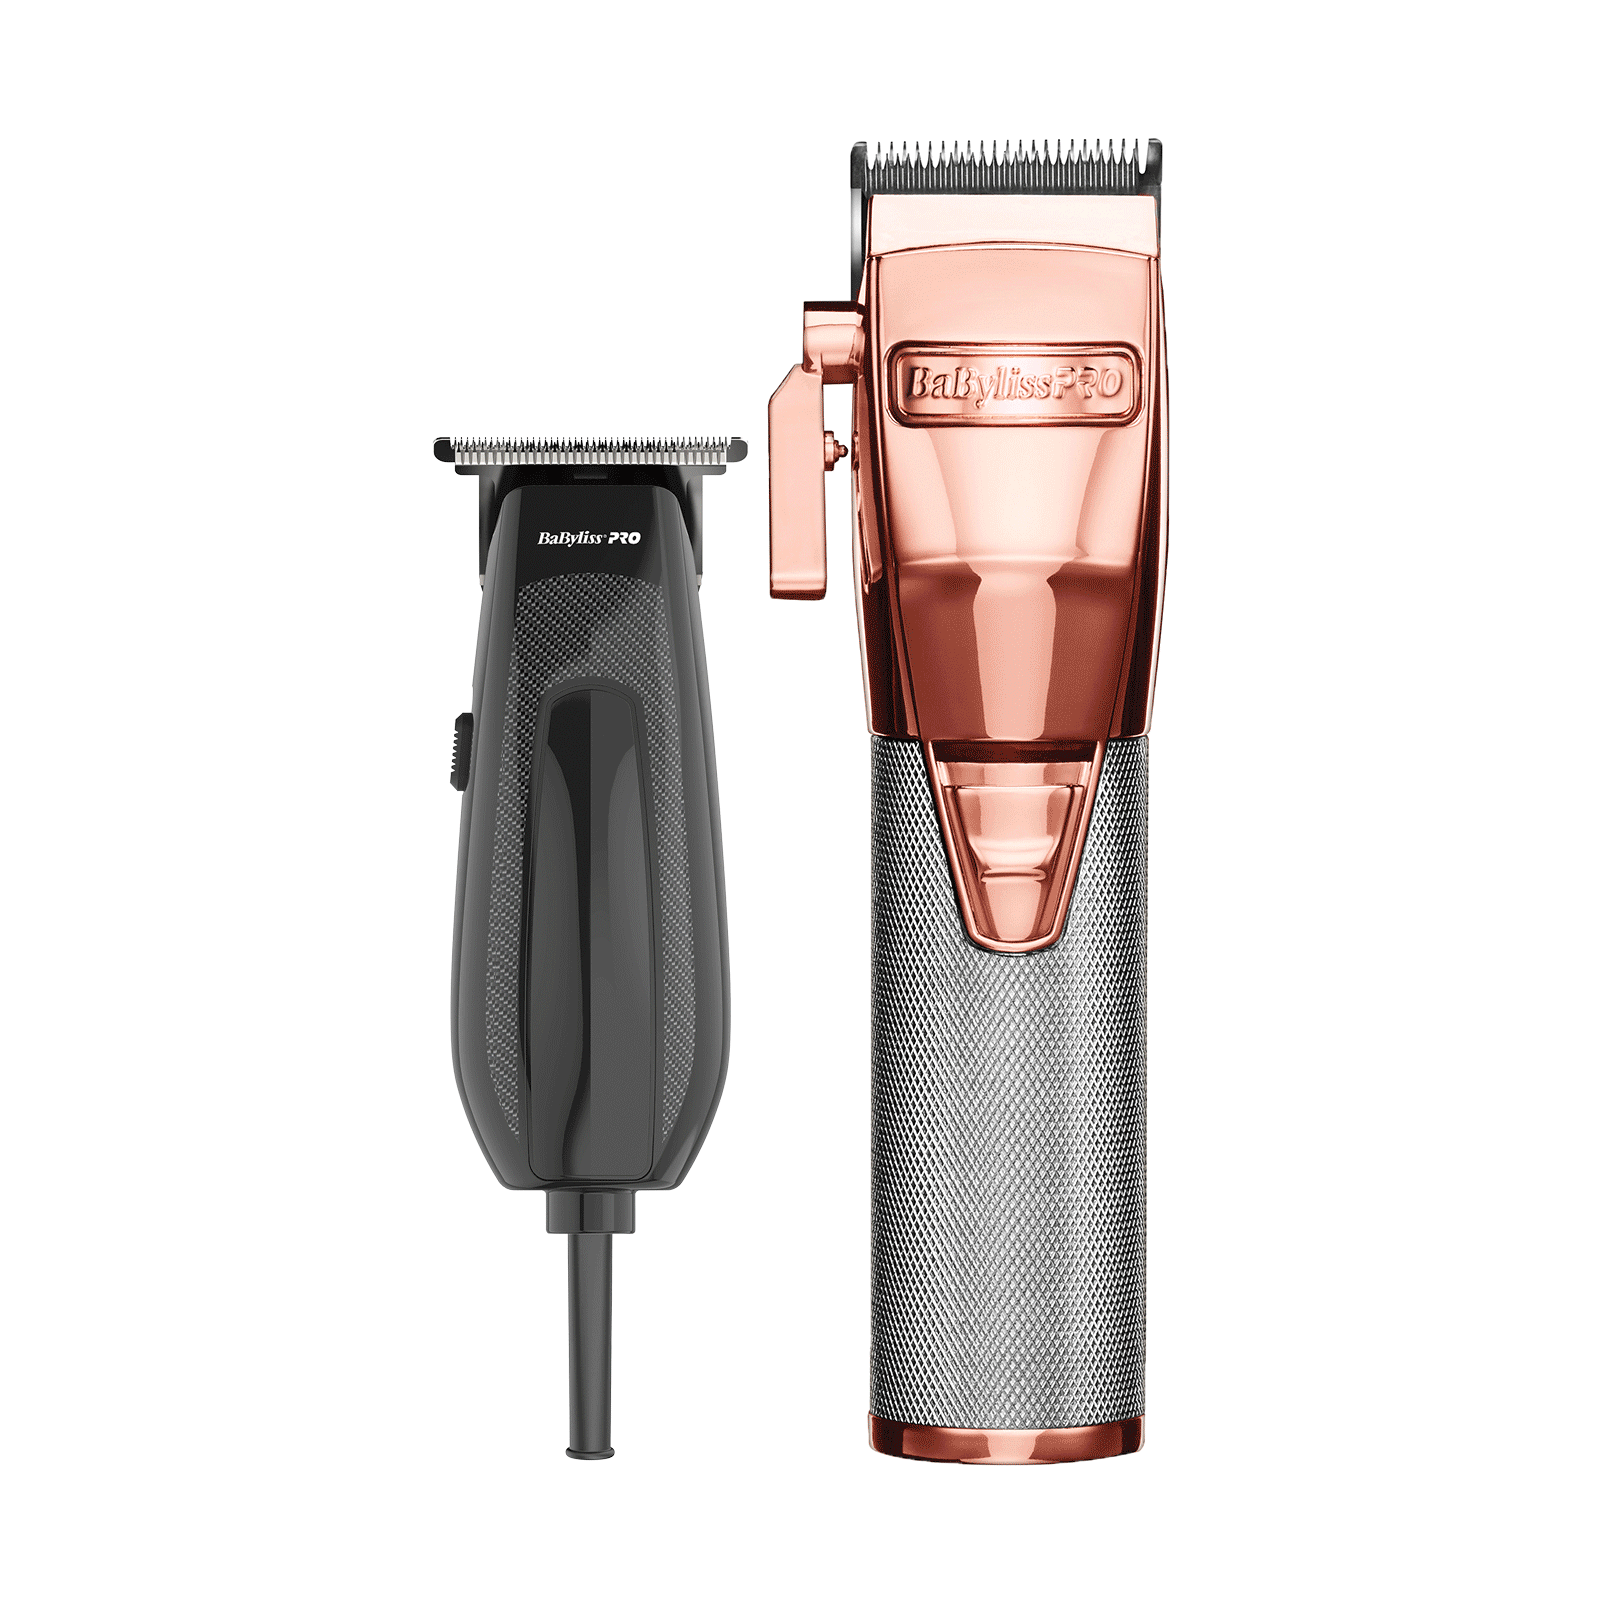 BaBylissPRO RoseFX Clipper & FX69 Small Powerful Trimmer